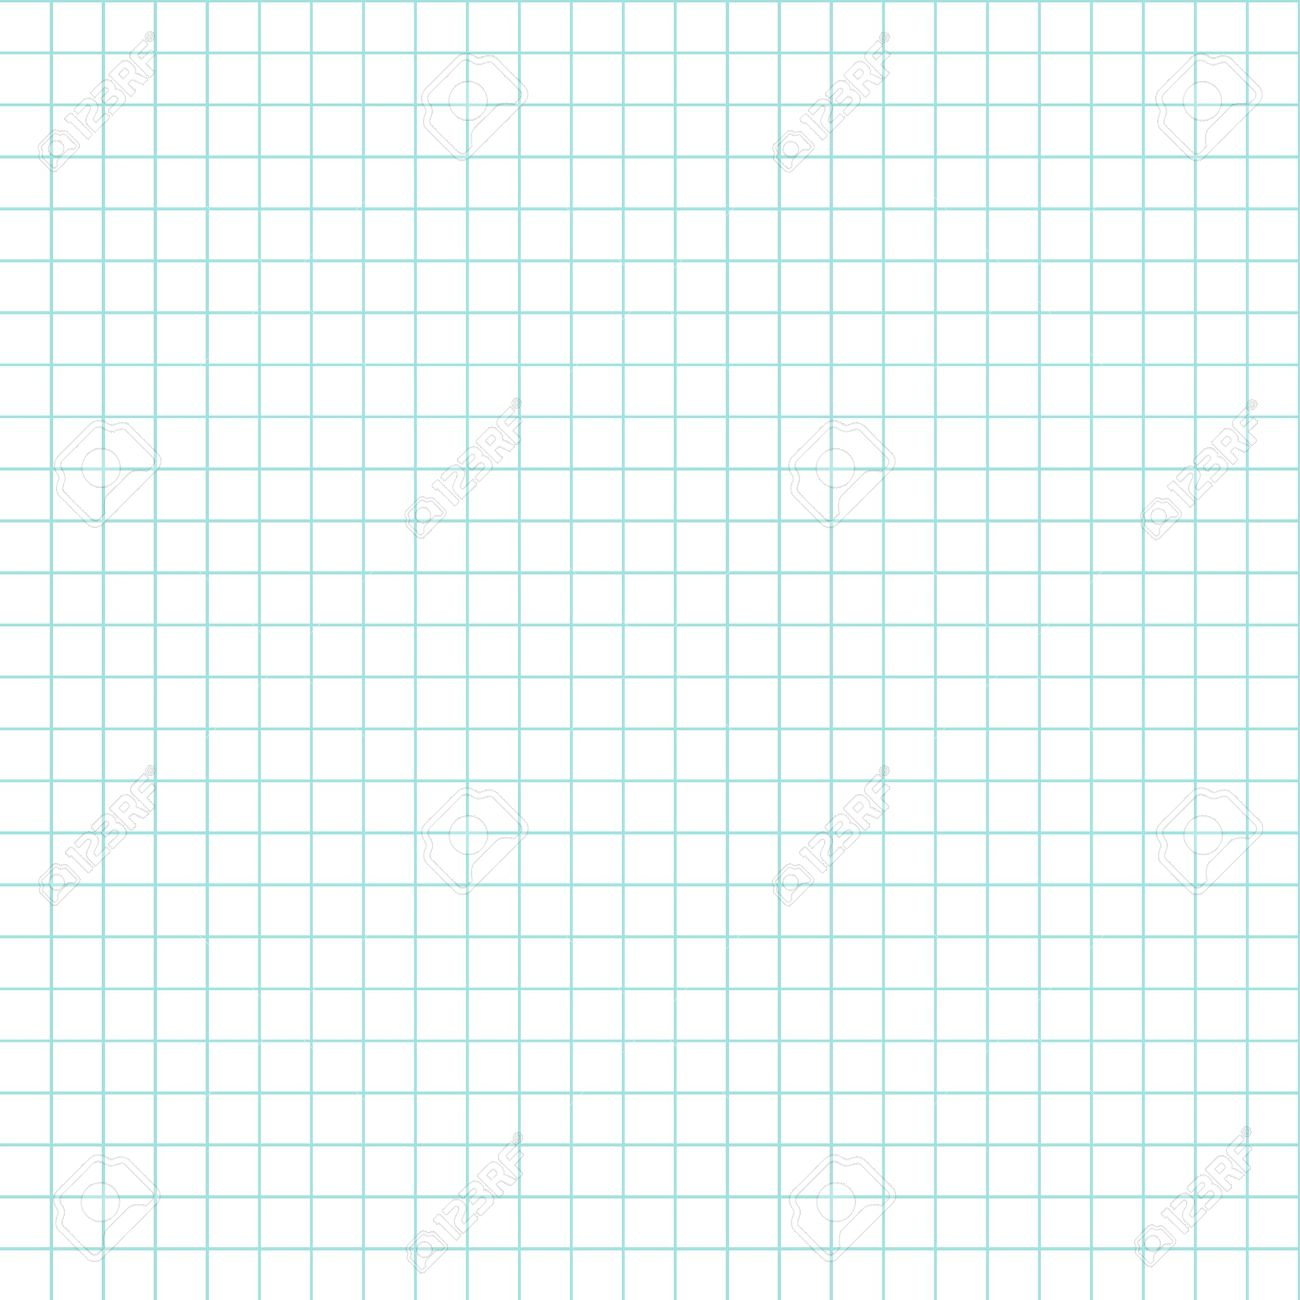 blue graph background royalty free cliparts vectors and stock